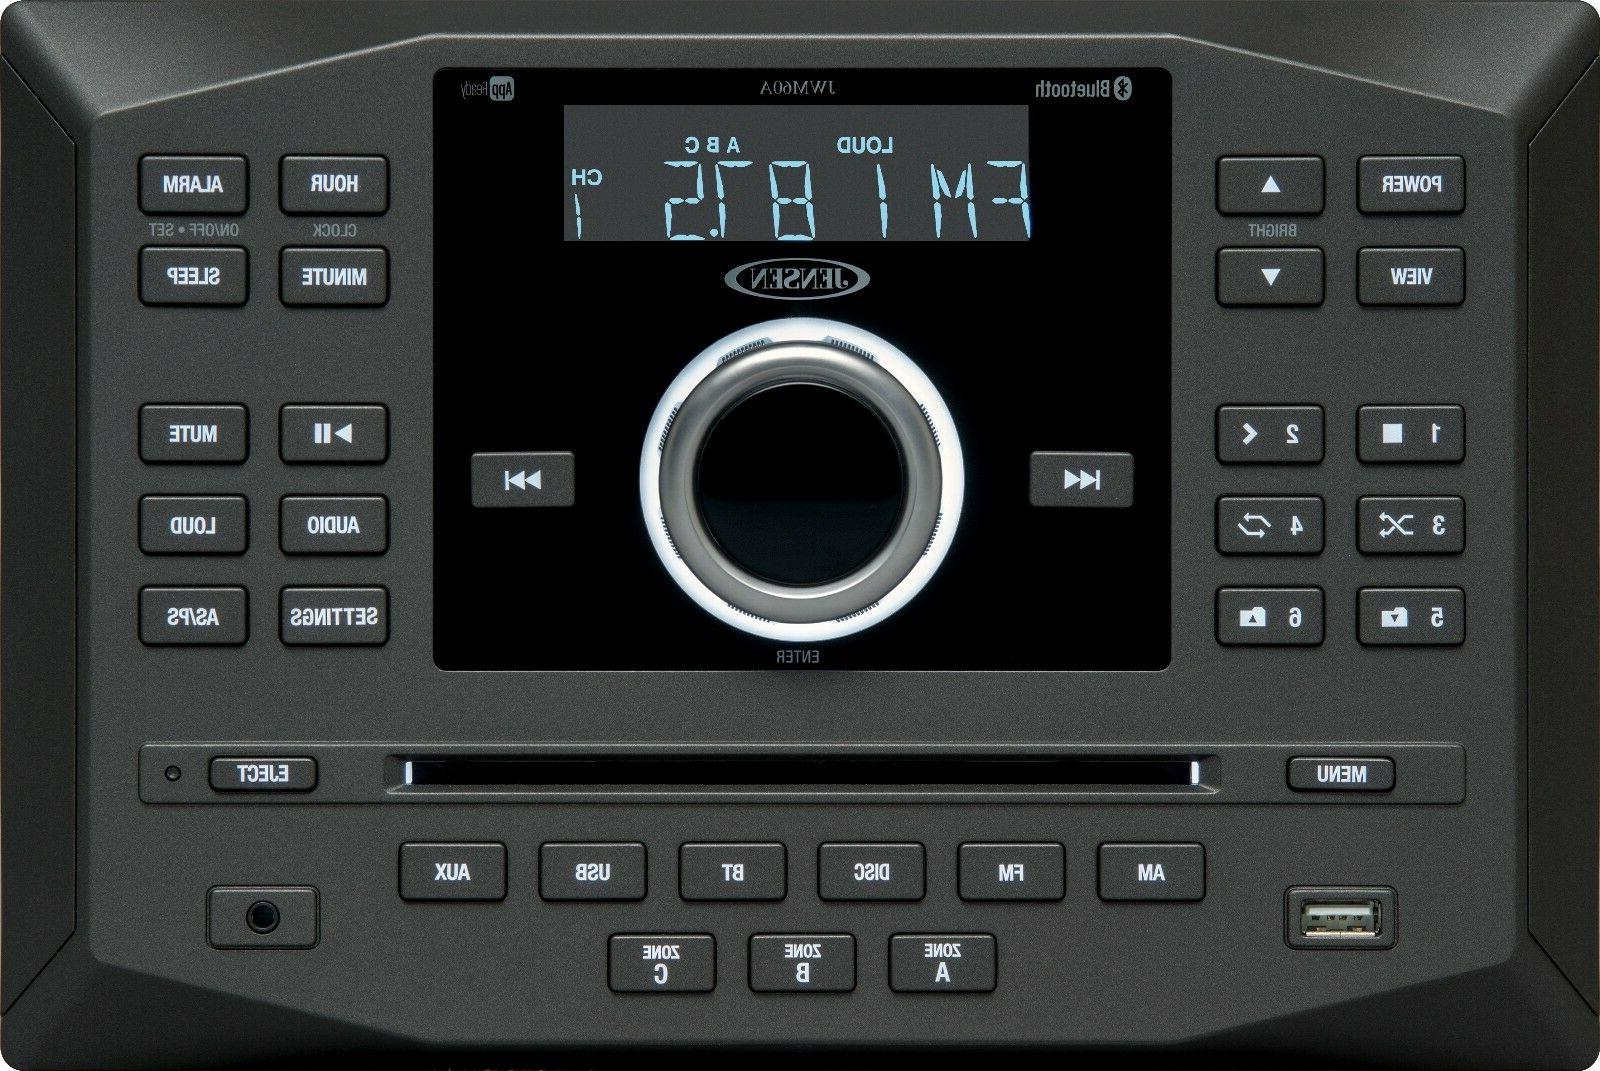 jwm60a am fm dvd cd